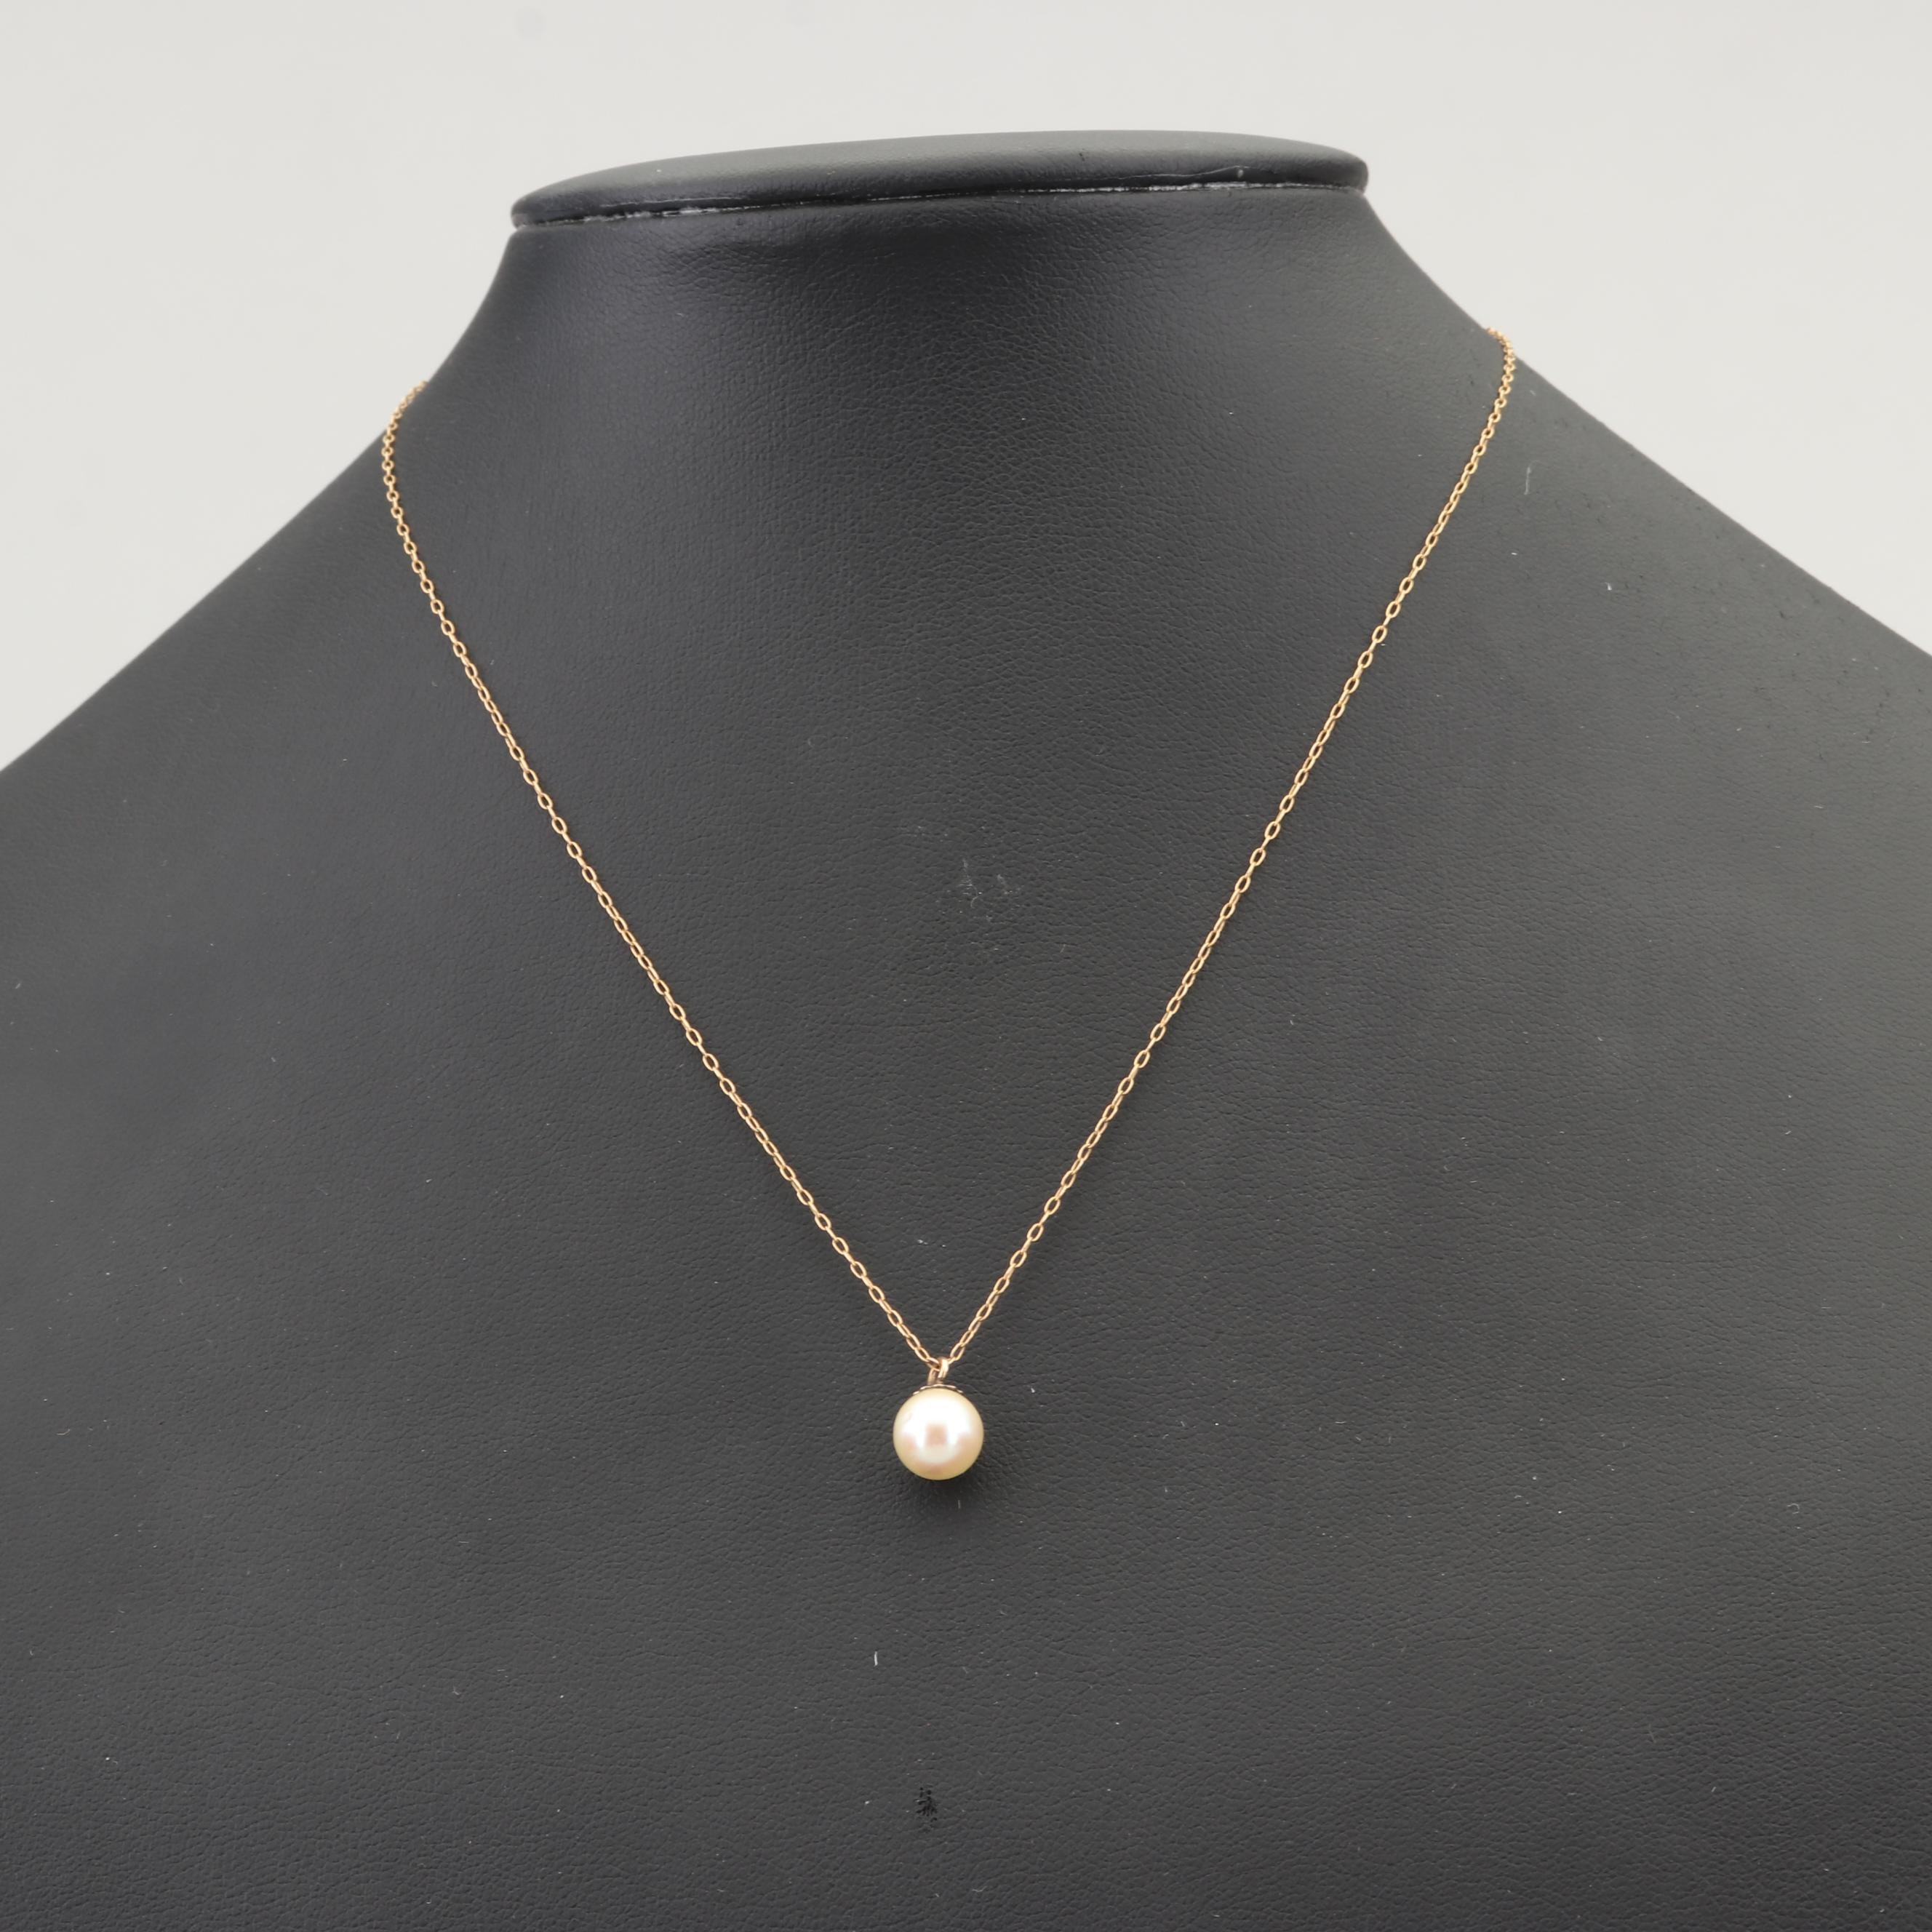 Vintage 14K Yellow Gold Cultured Pearl Necklace